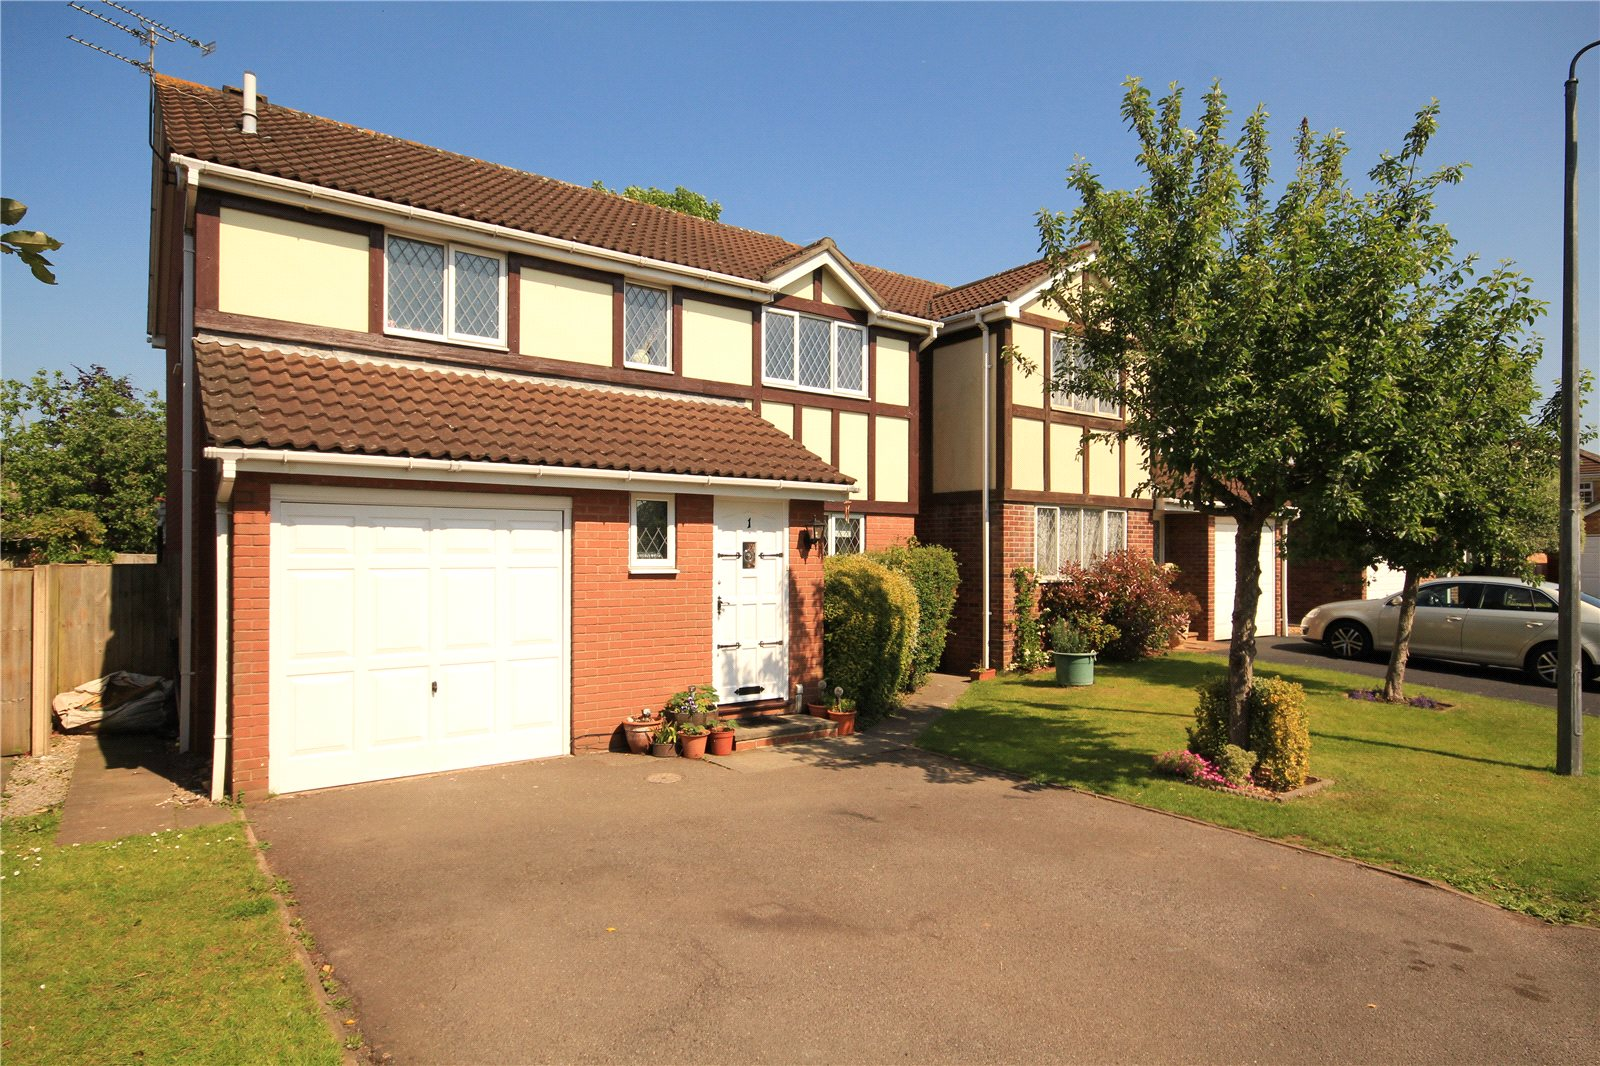 4 Bedrooms Detached House for sale in Haydock Close Downend Bristol BS16